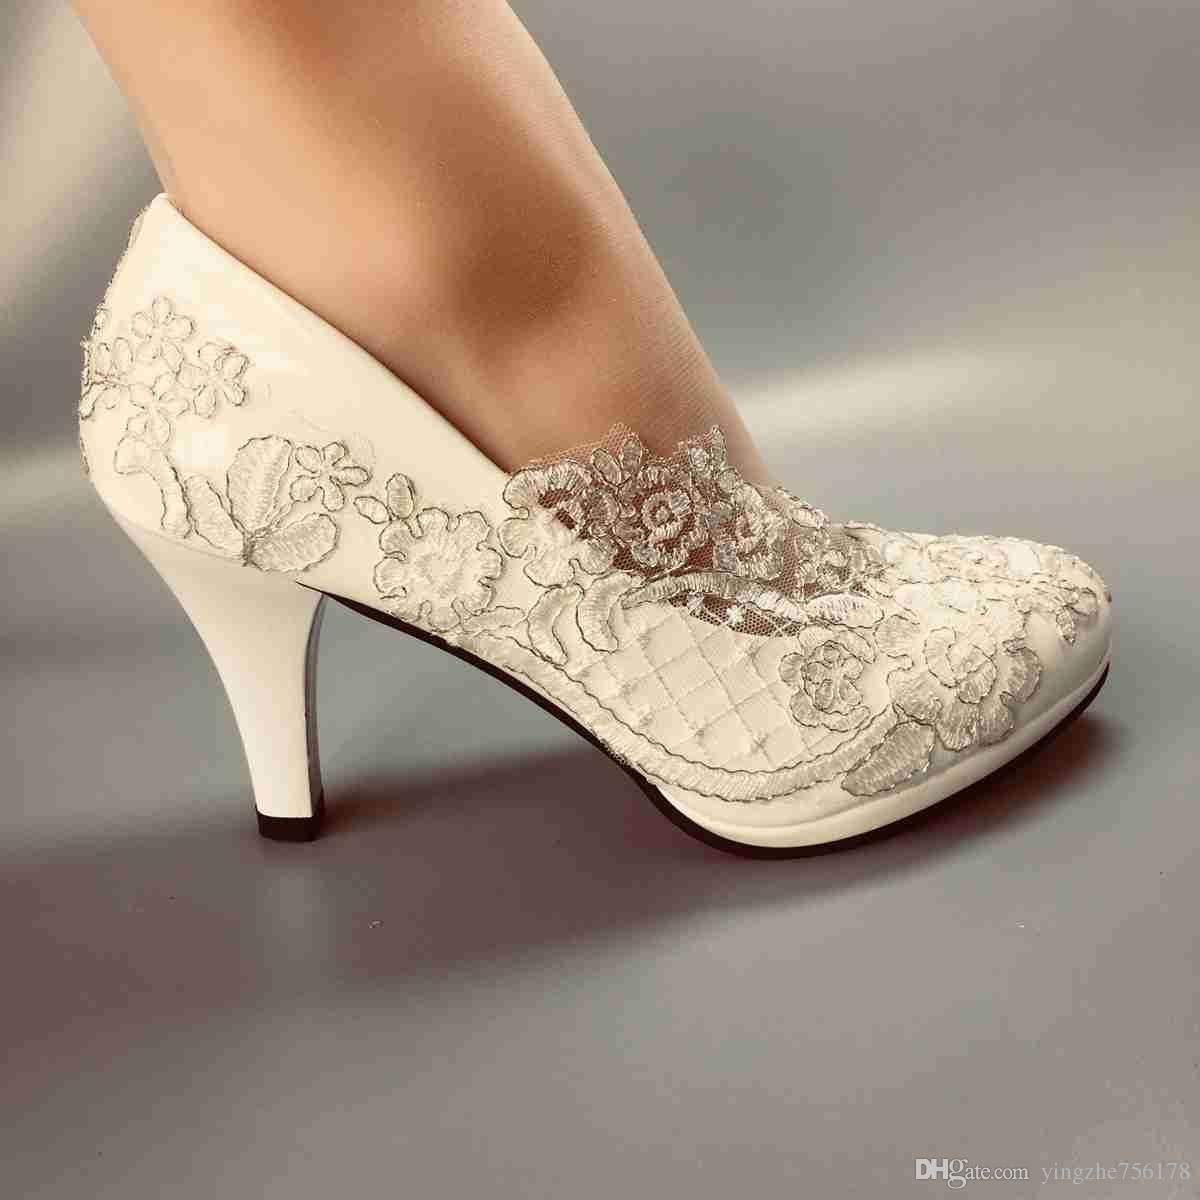 a9c7147b35a8 Women Wedding Shoes Waterproof White Lace Bride Wedding Dresses HEEL Diamond  Lace Manual Wedding BRIDAL HEEL Shoes SIZE EU 35 42 Wedding Shoes Purple ...